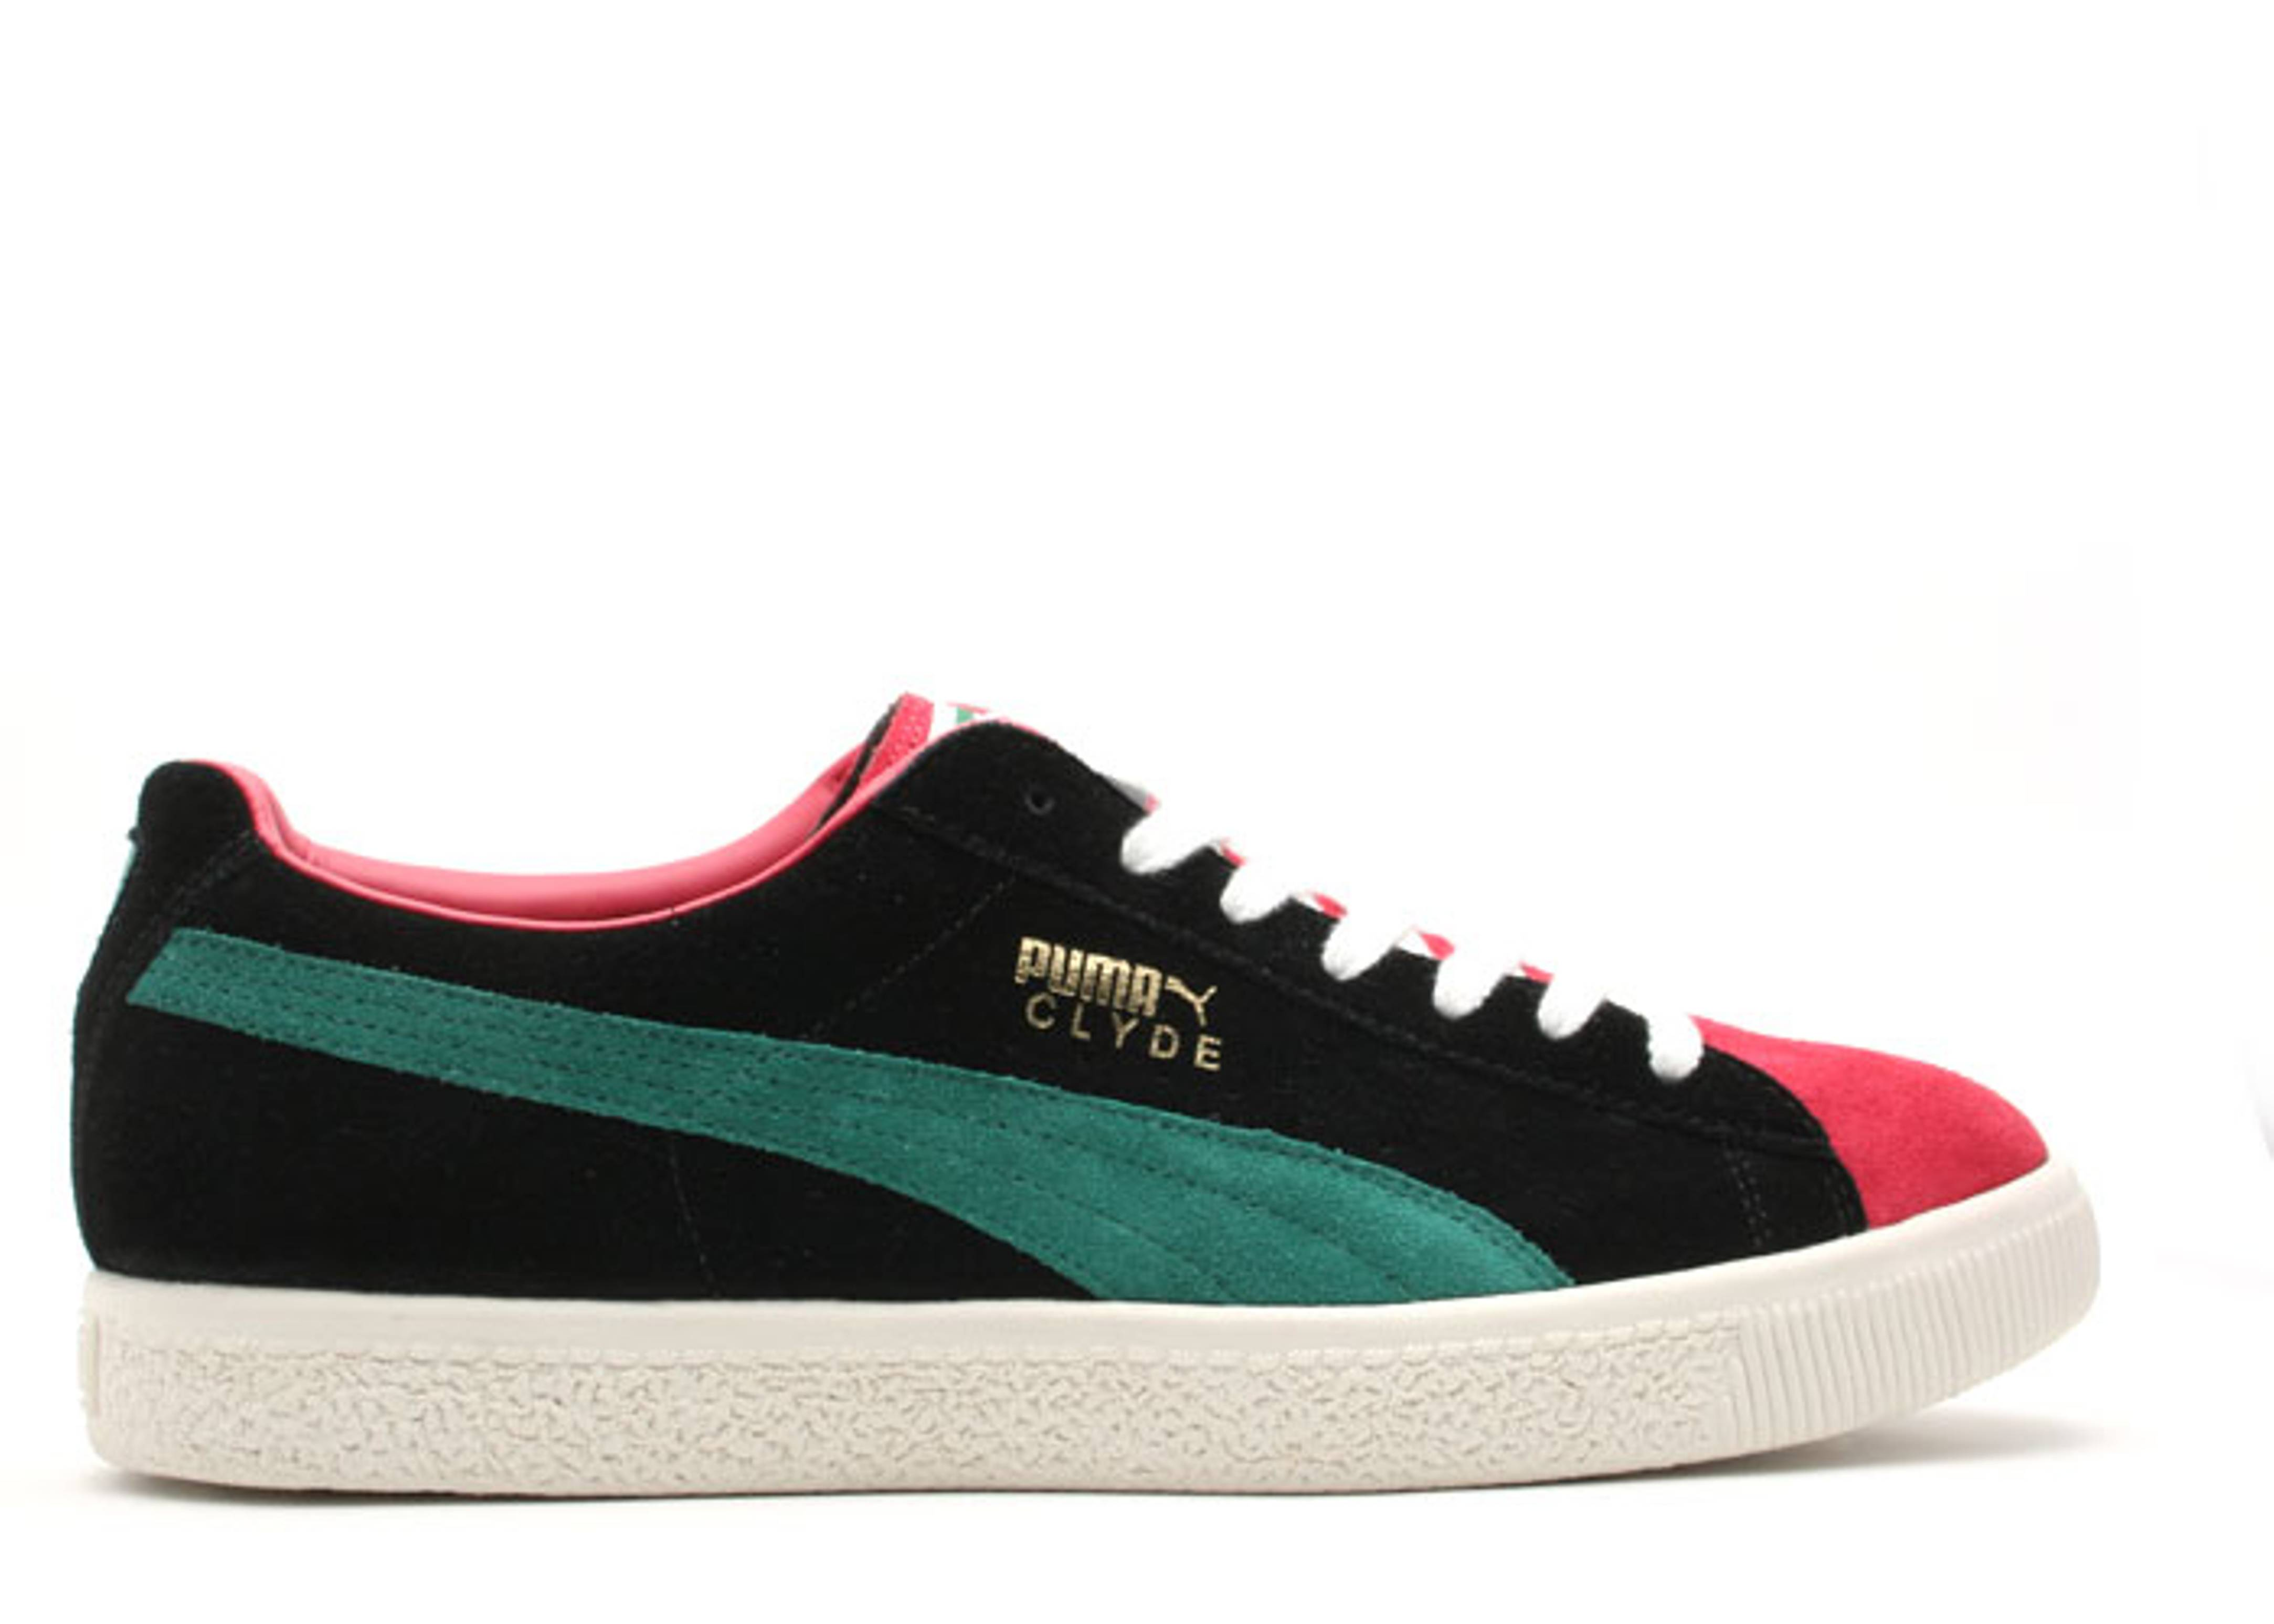 21543c322daf Buy puma clyde green - 57% OFF! Share discount